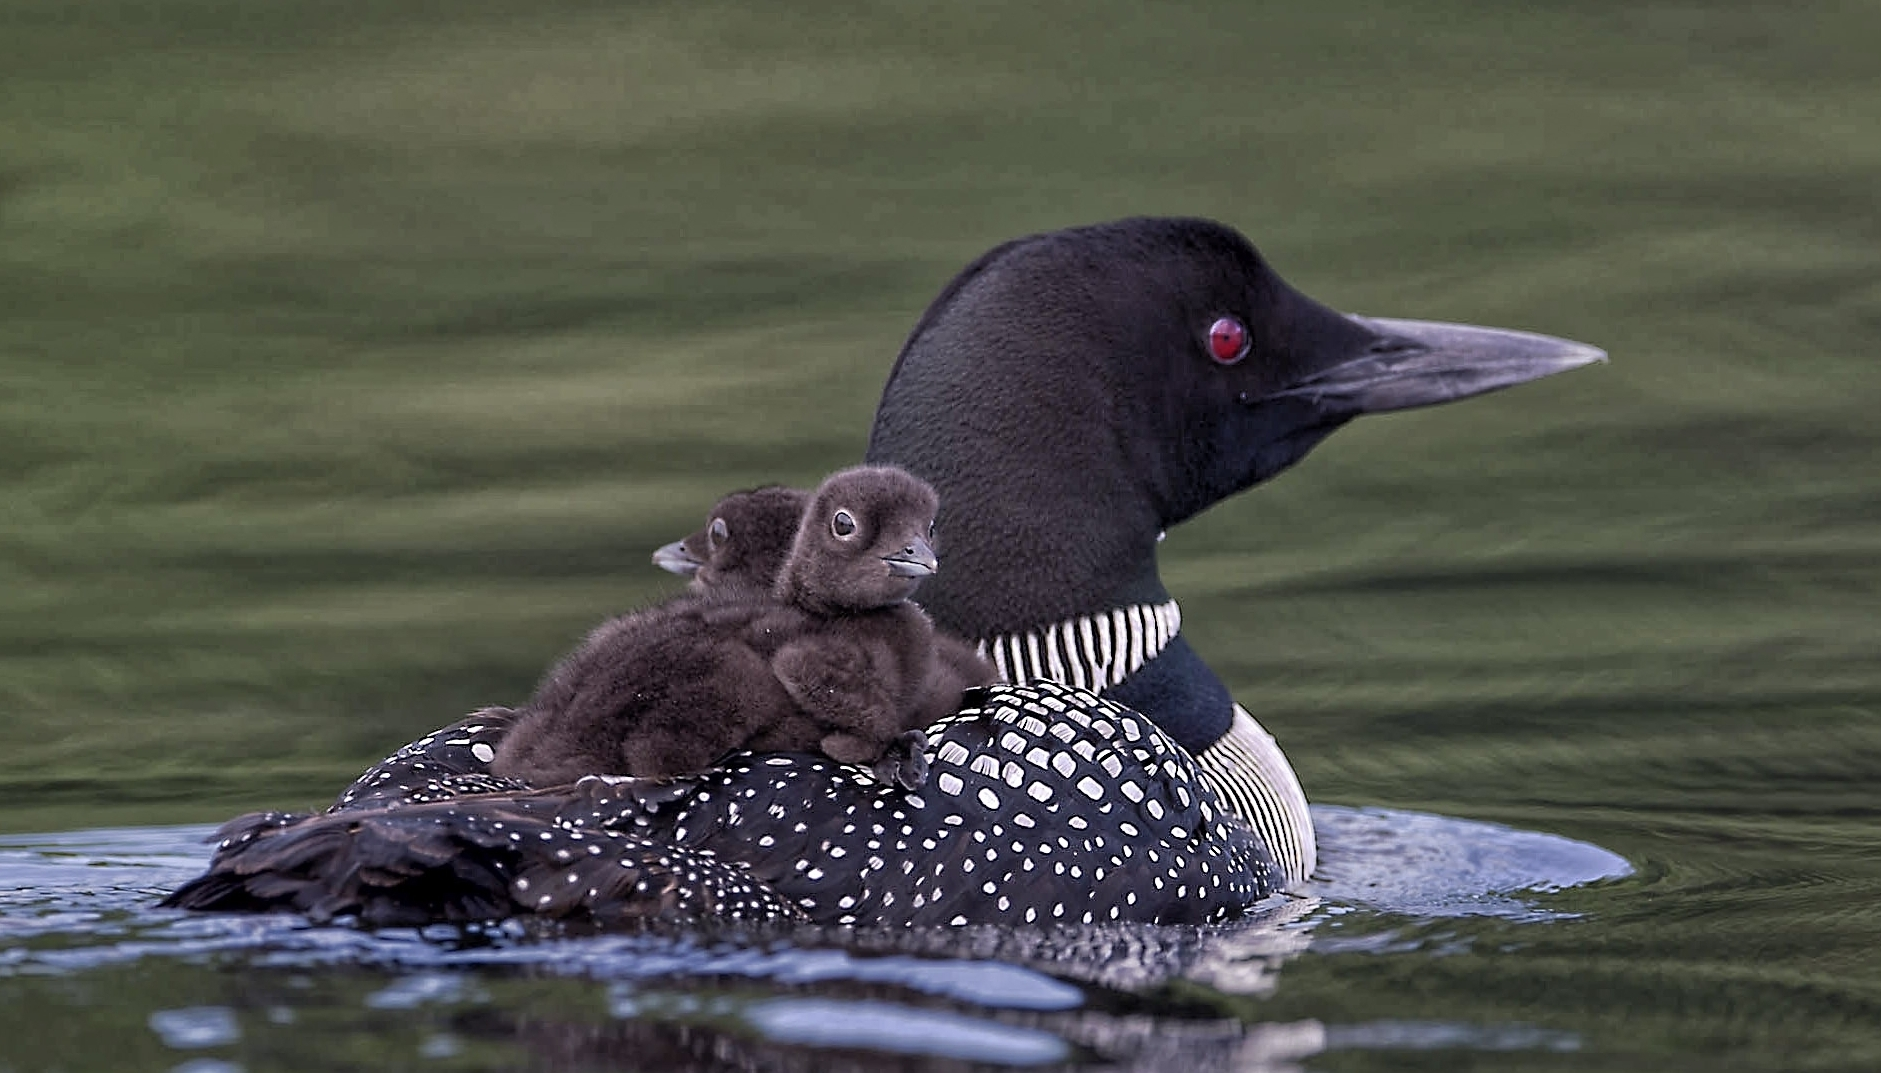 Common Loon chick photography workshop